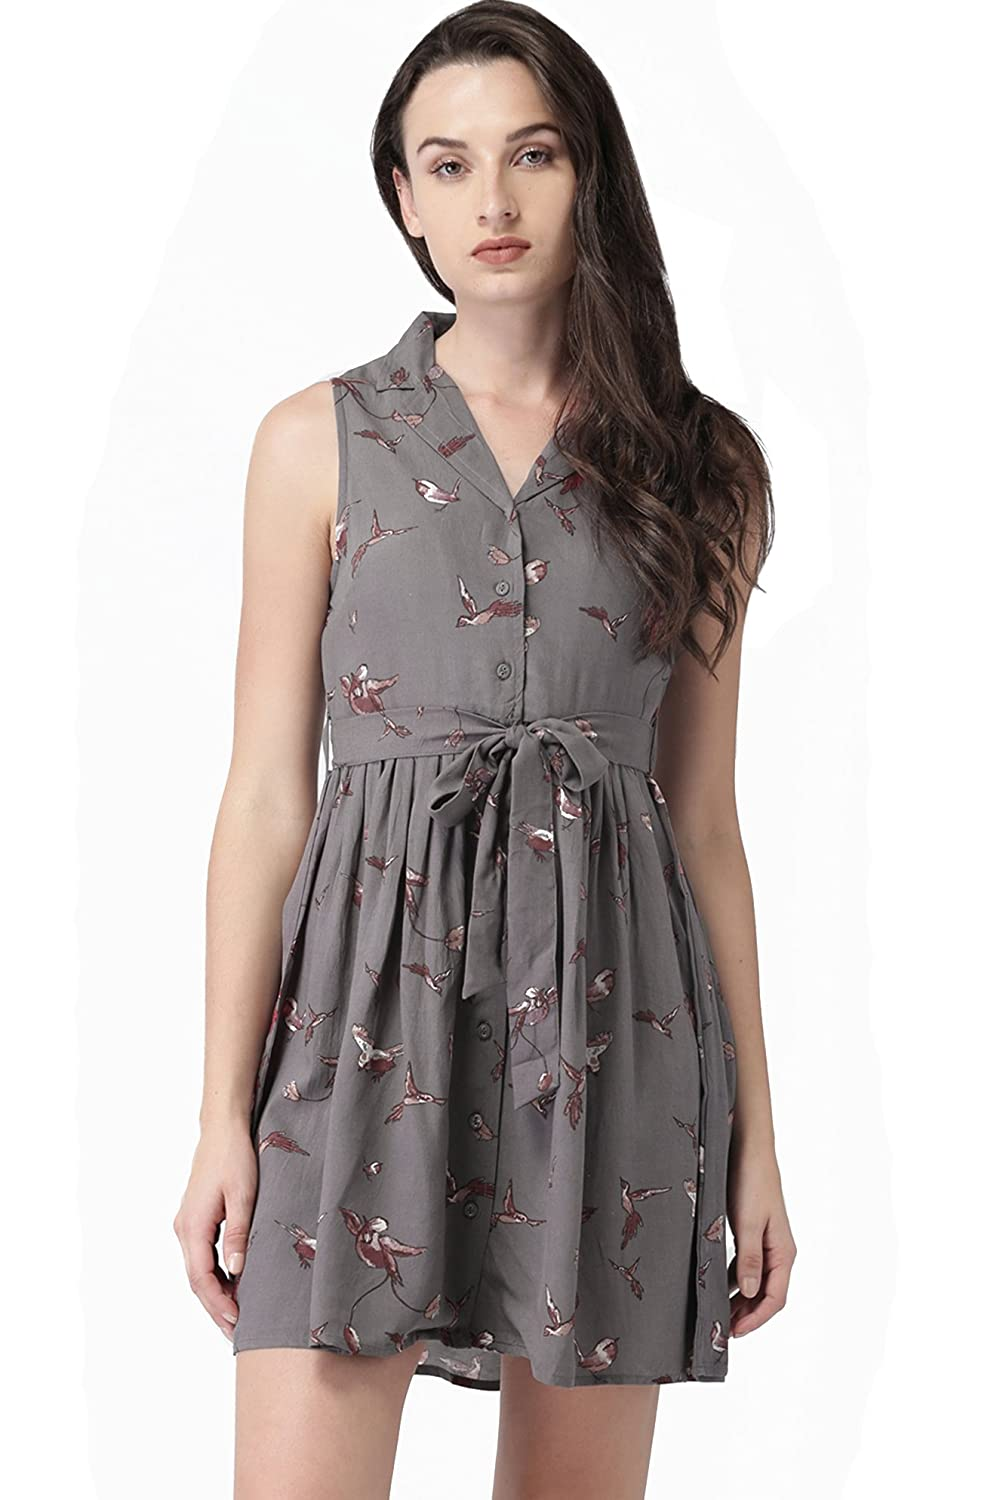 20dresses Womens Bird Printed Fit And Flare Sleeveless Shirt Dress